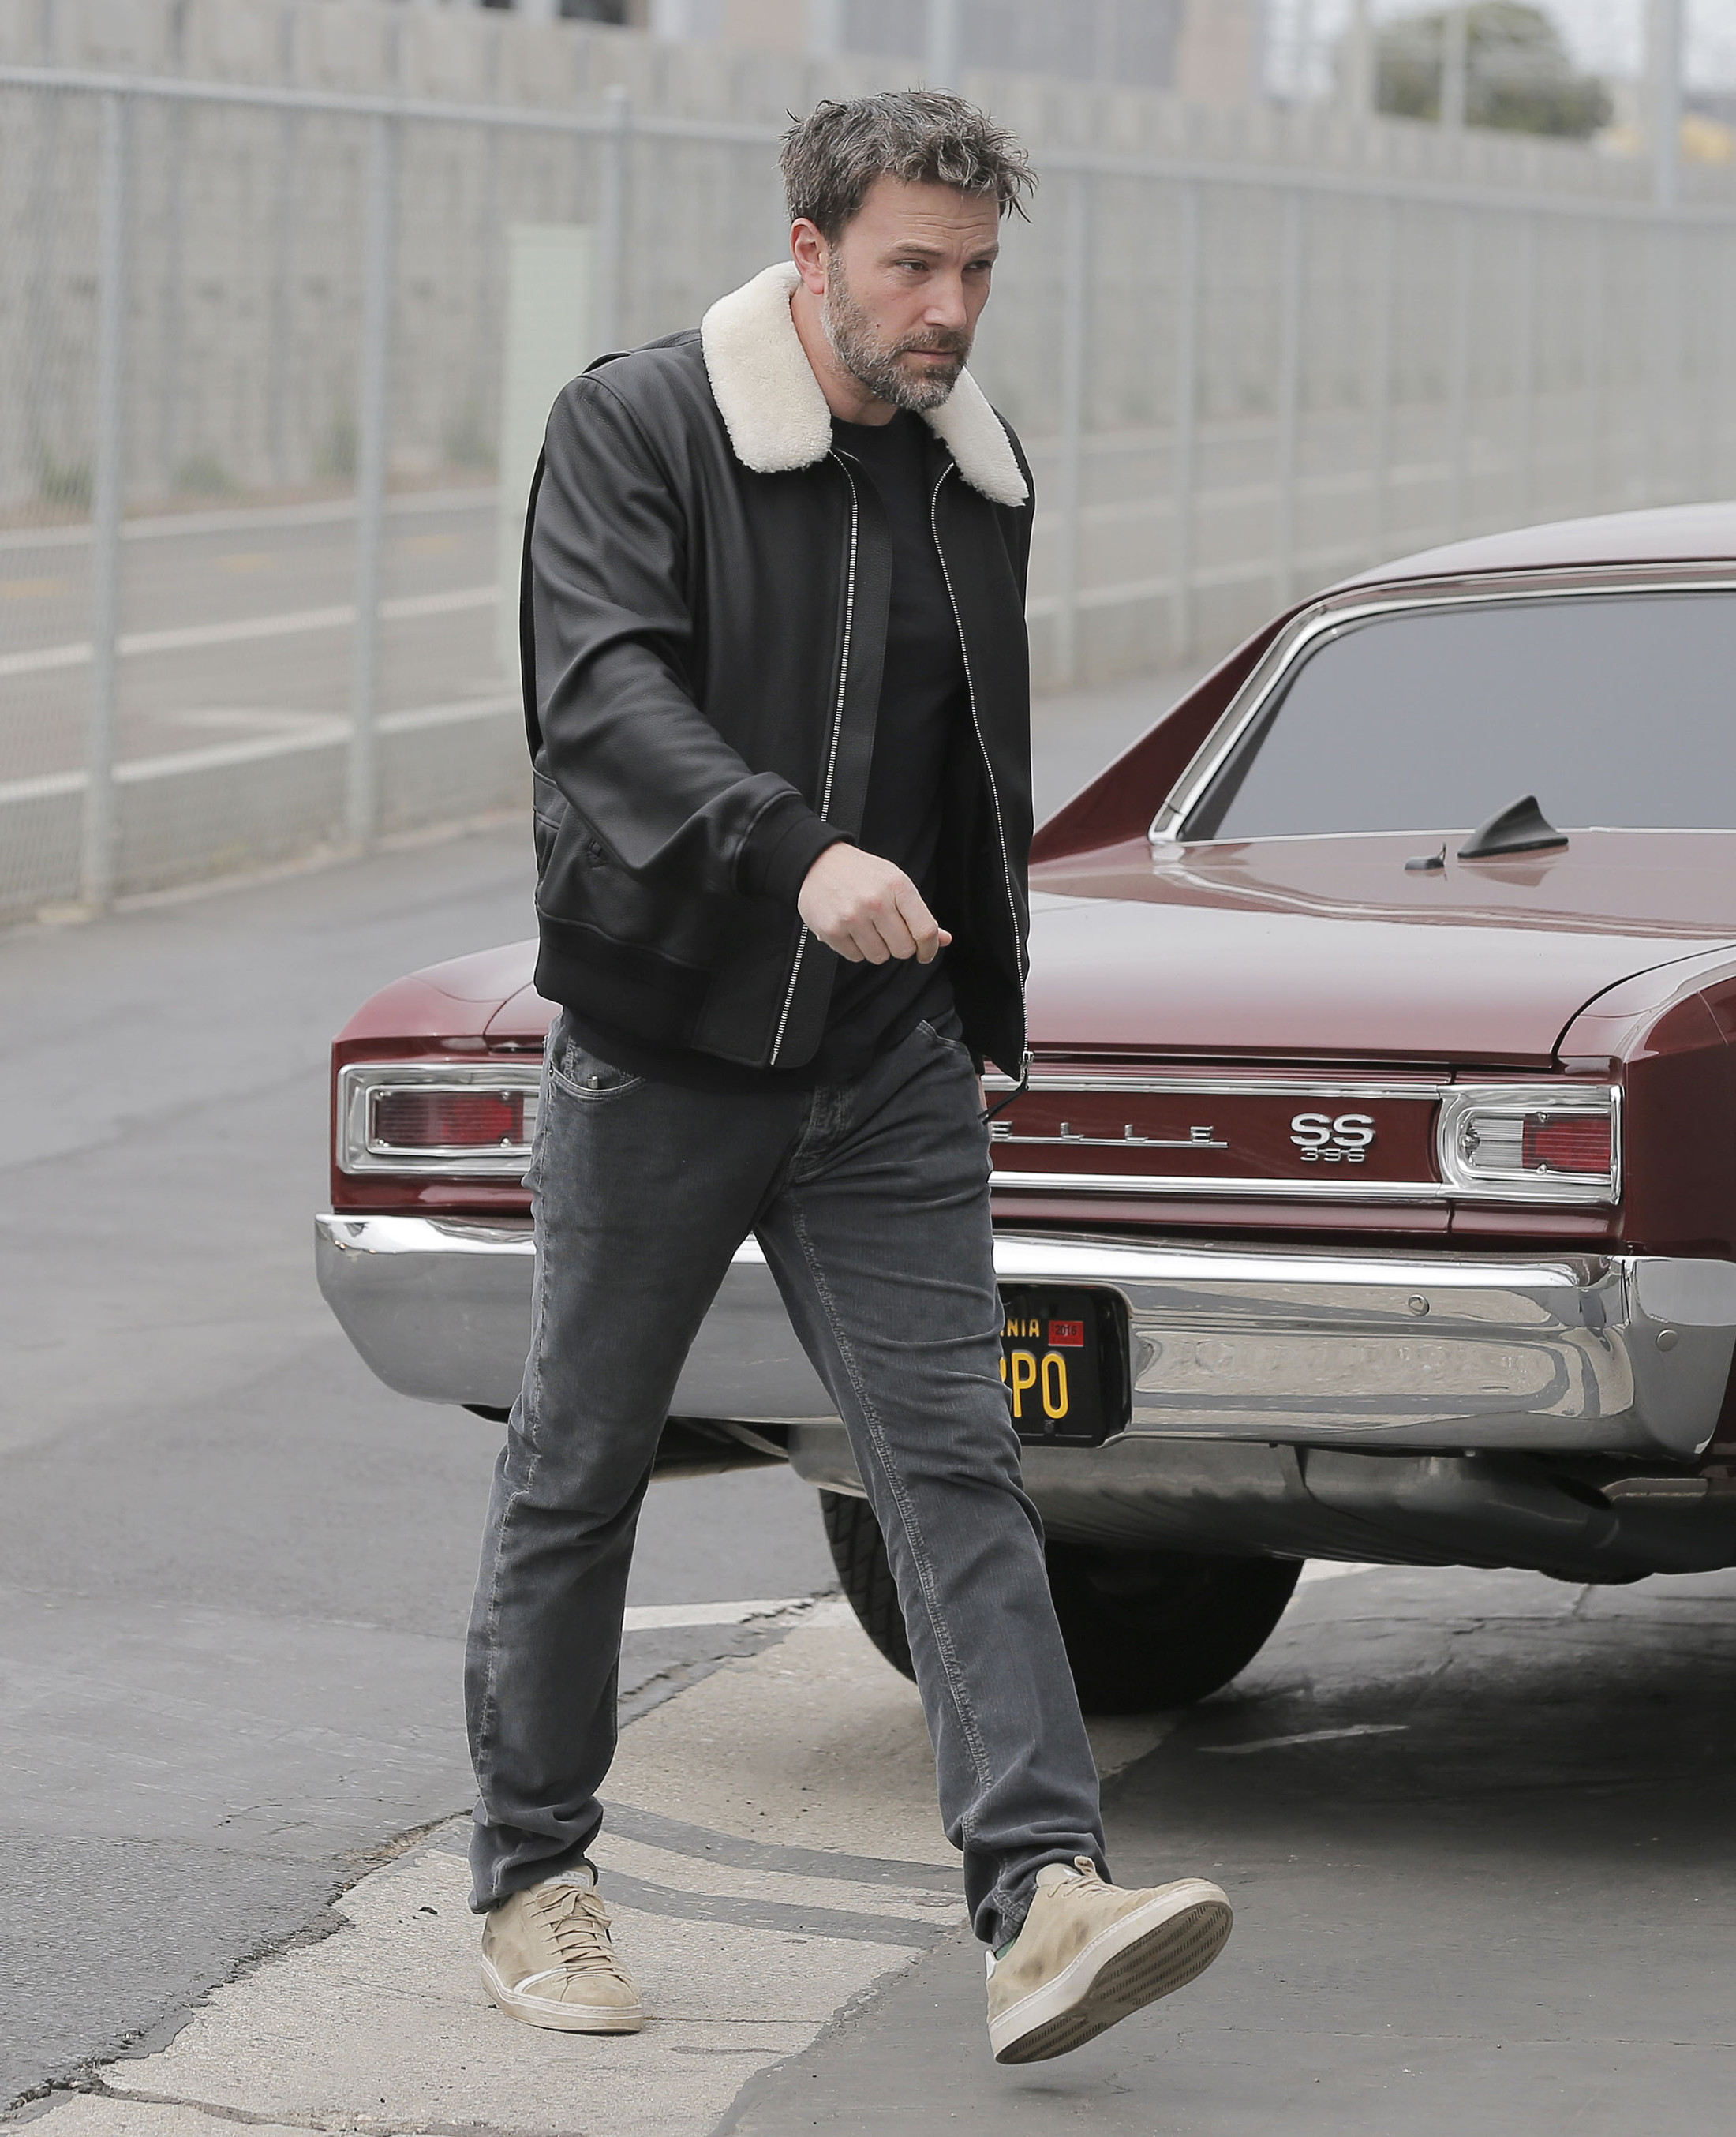 Ben Affleck Goes To An Office Building In Santa Monica